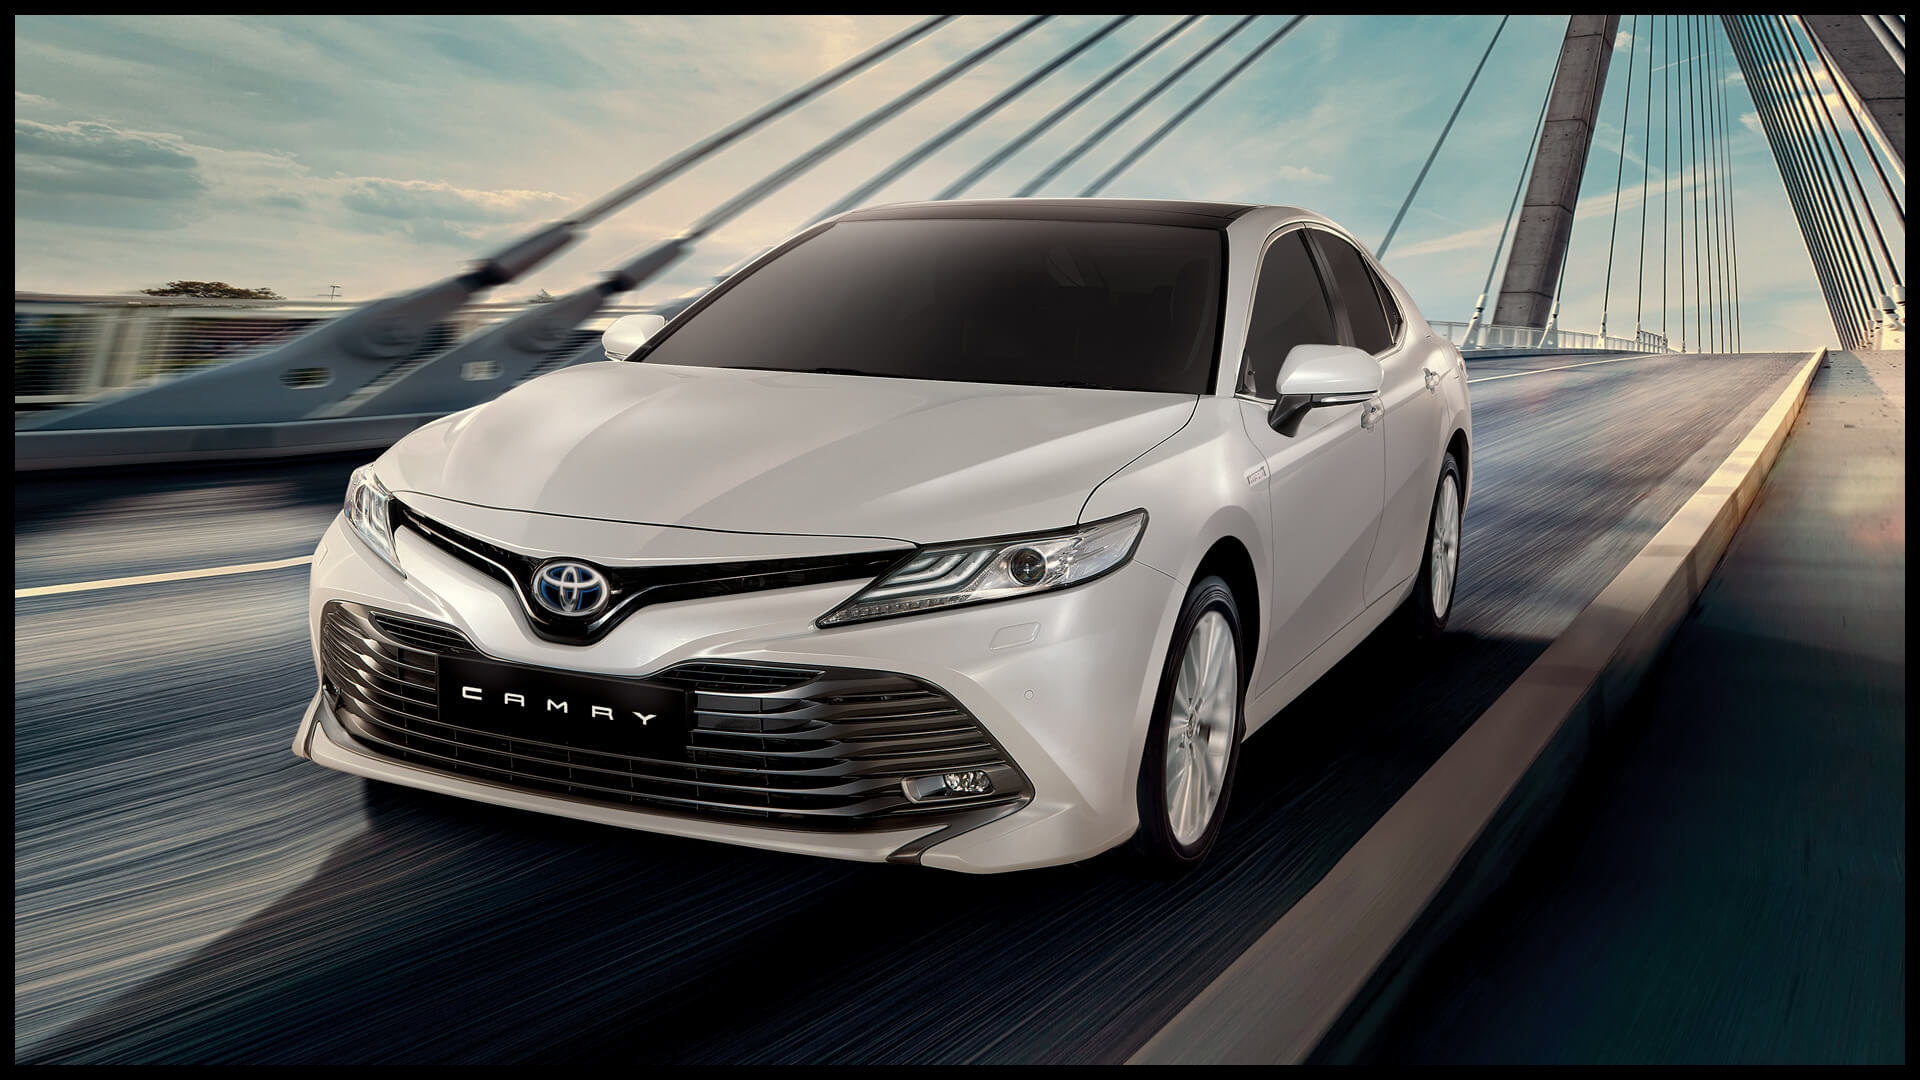 New toyota Camry 2018 Prices In Pakistan and Reviews Reviews